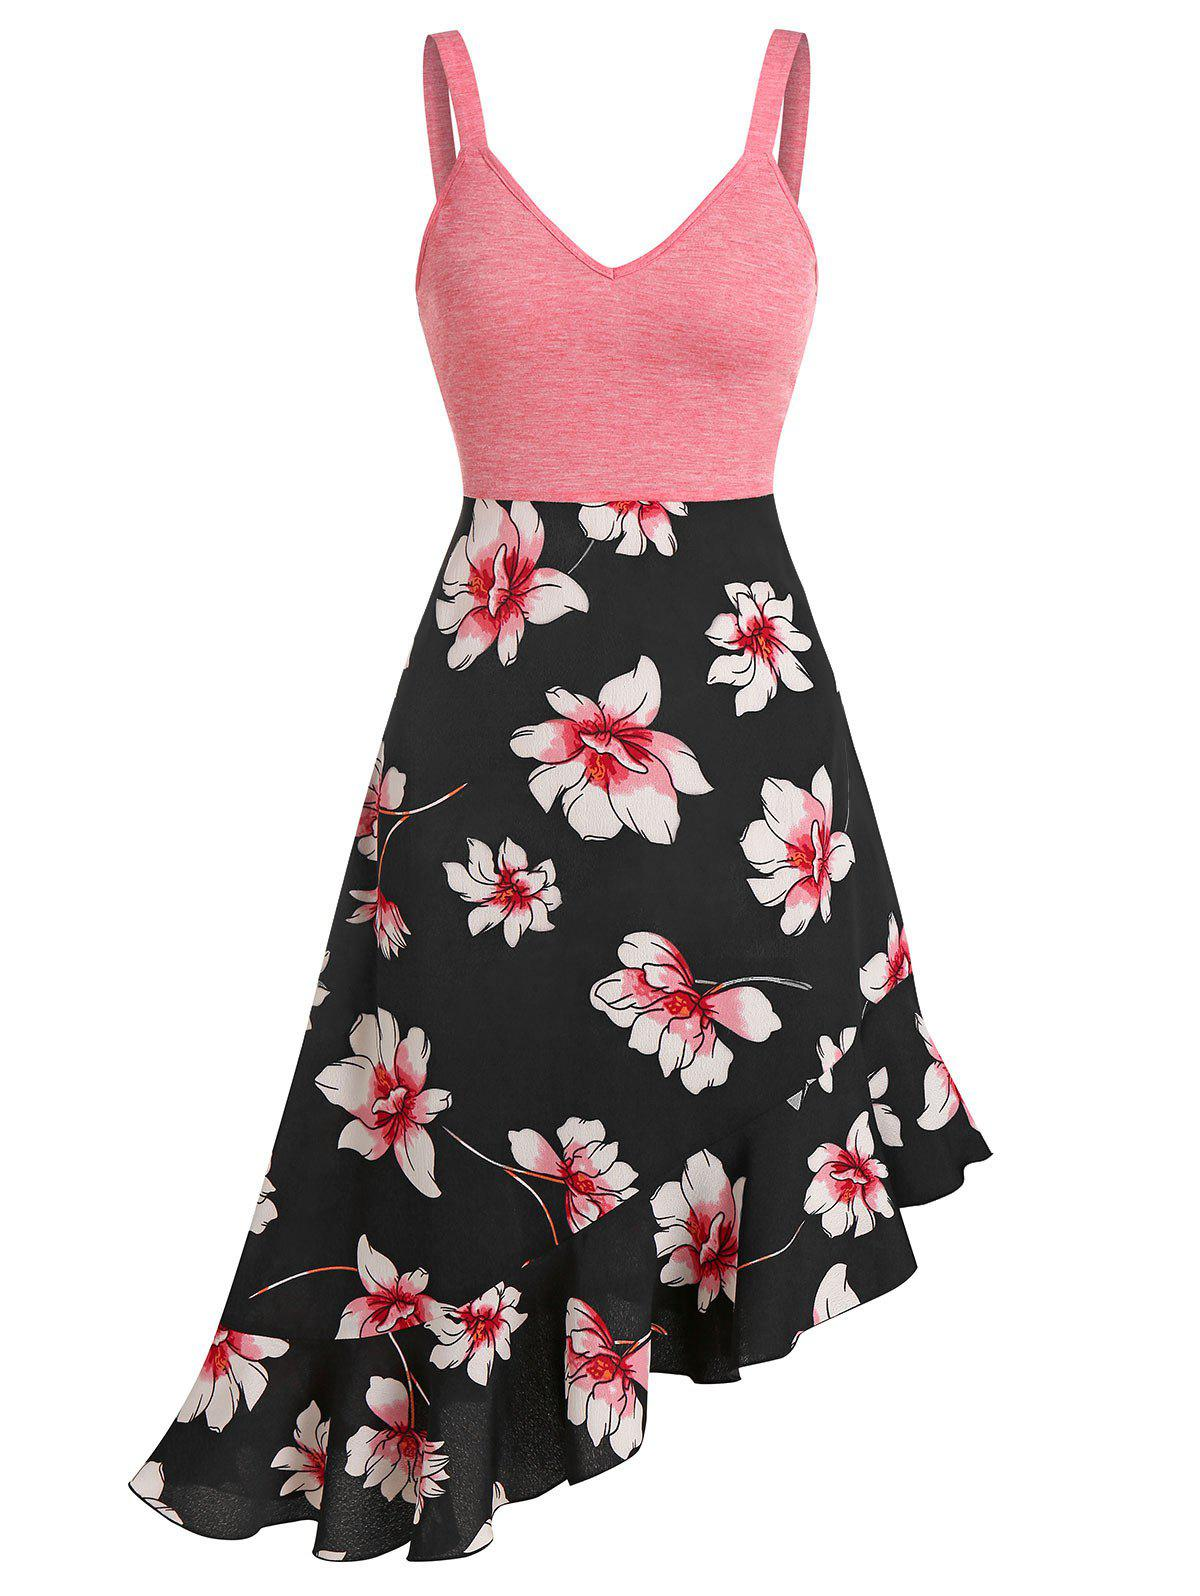 New Floral Print Ruffled Hem Empire Waist Cami Dress